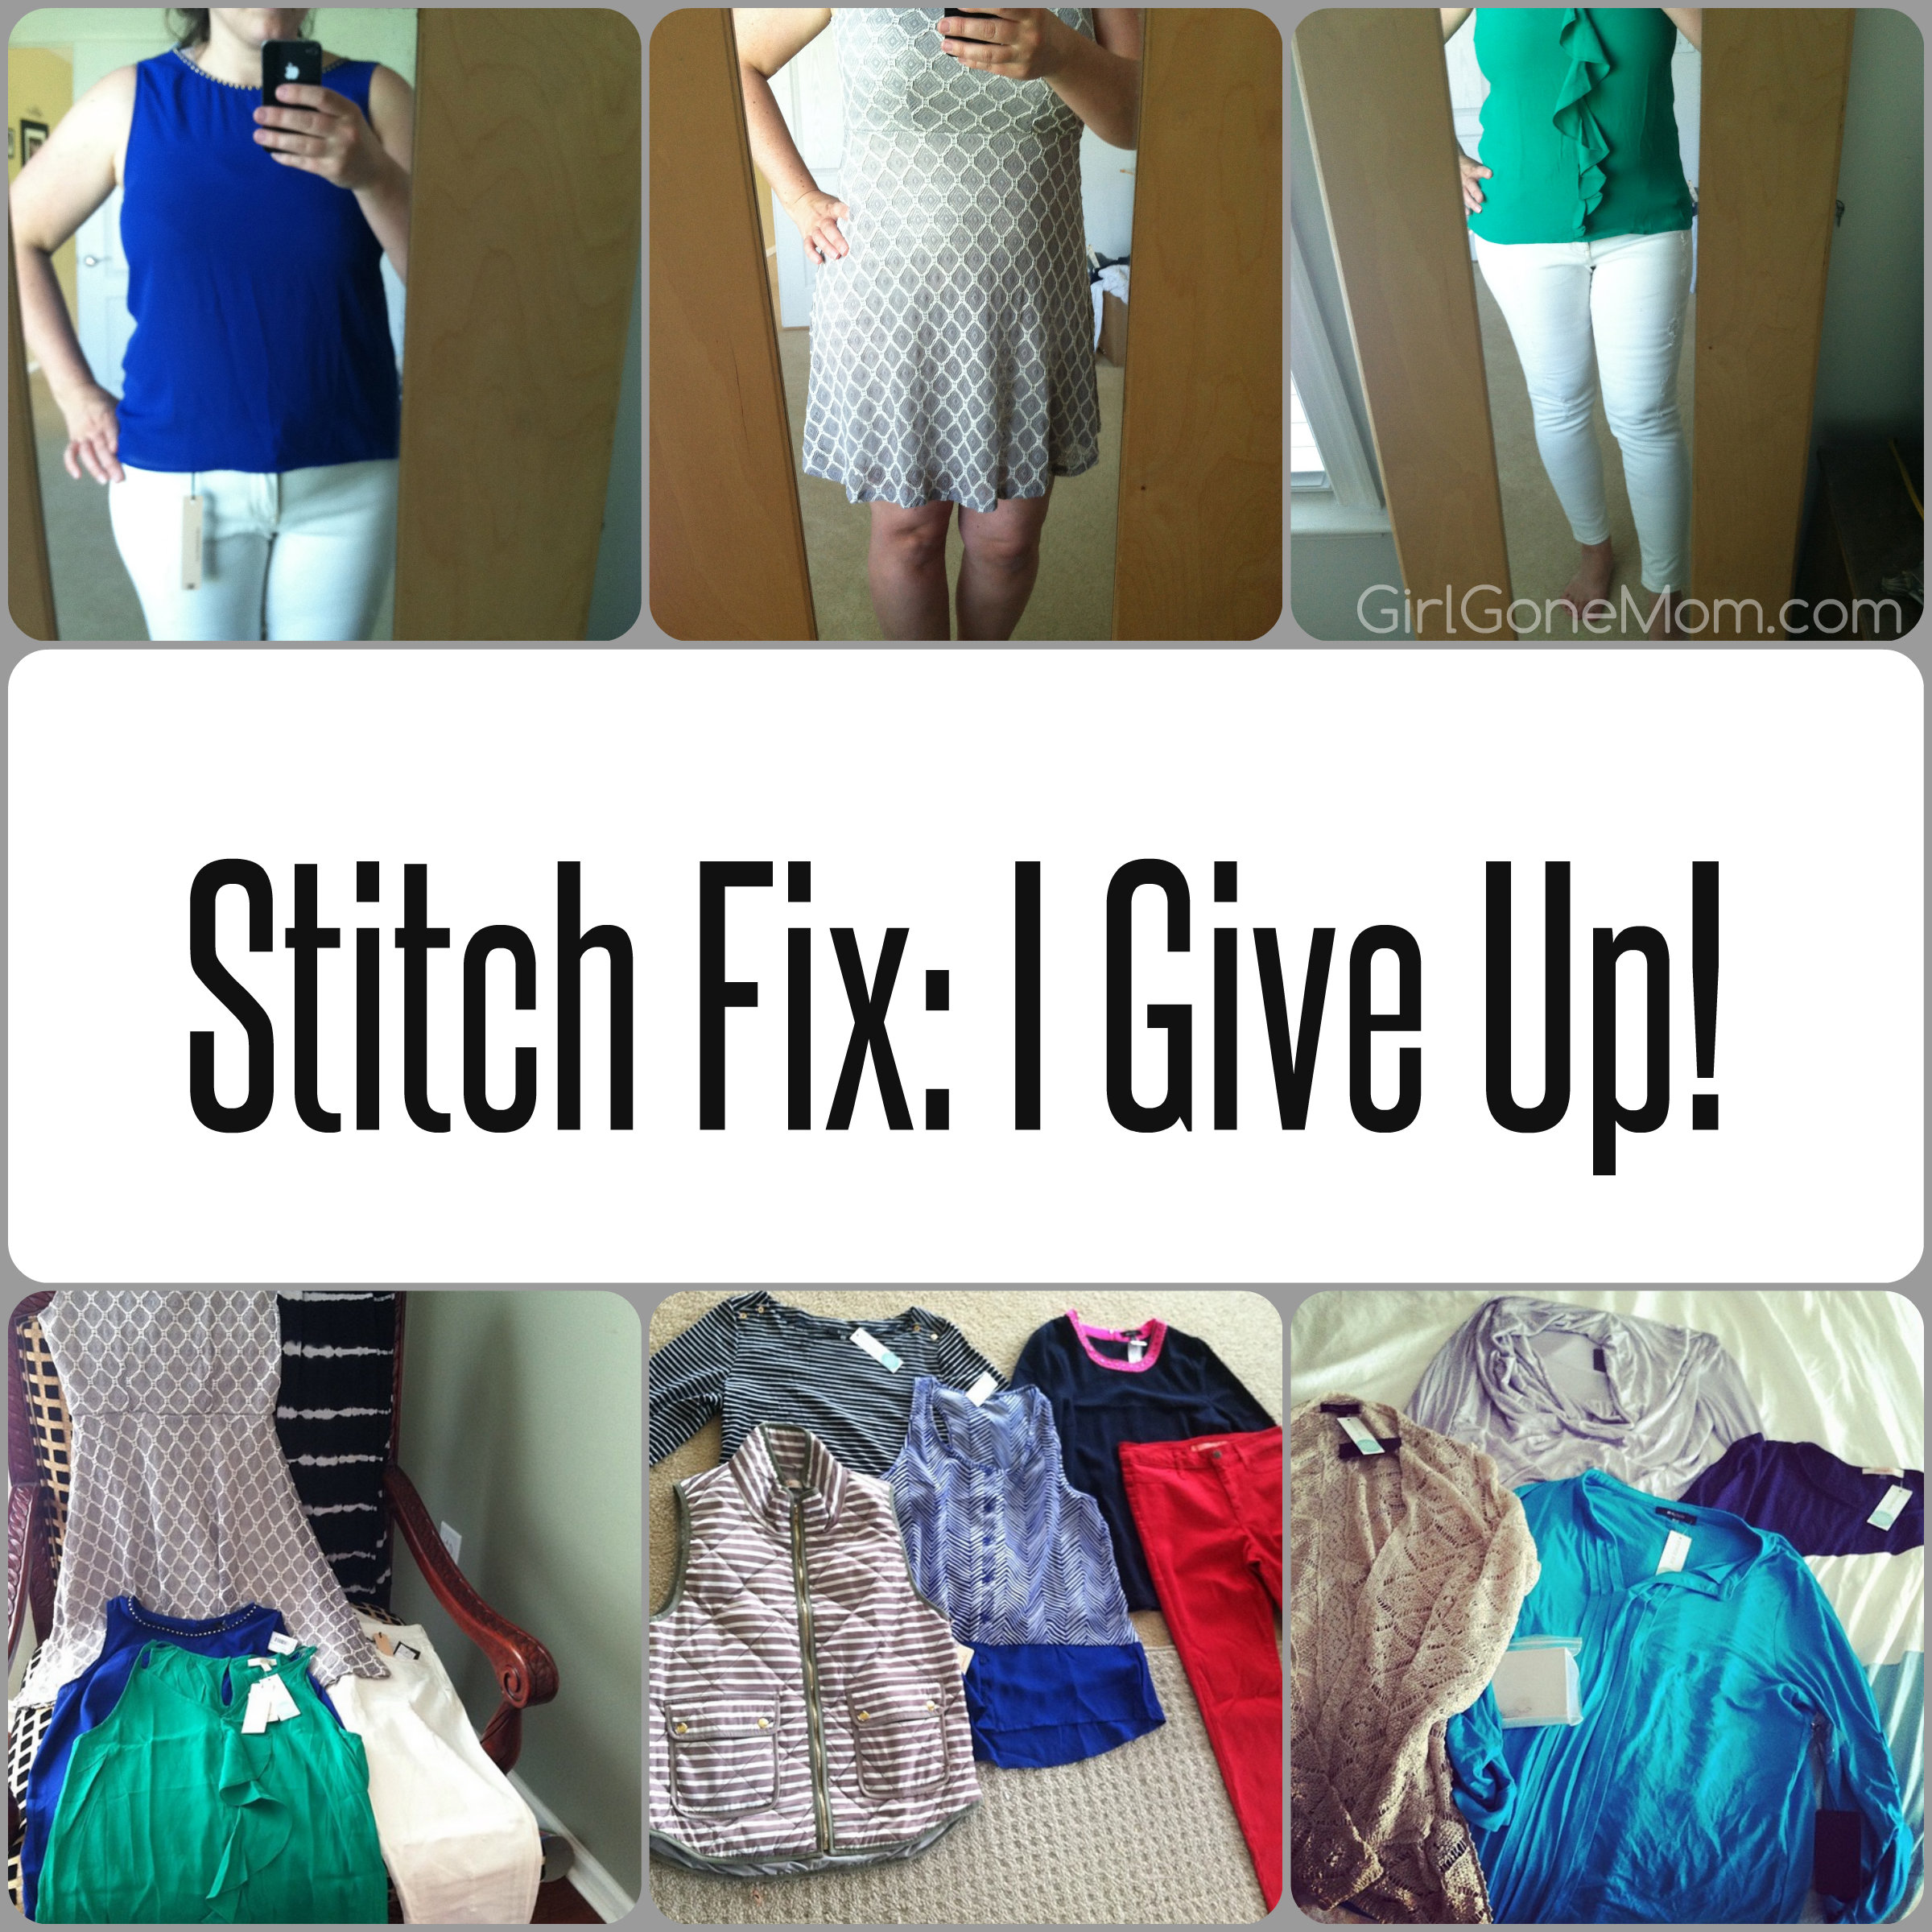 Why I'm giving up on Stitch Fix - Girl Gone Mom